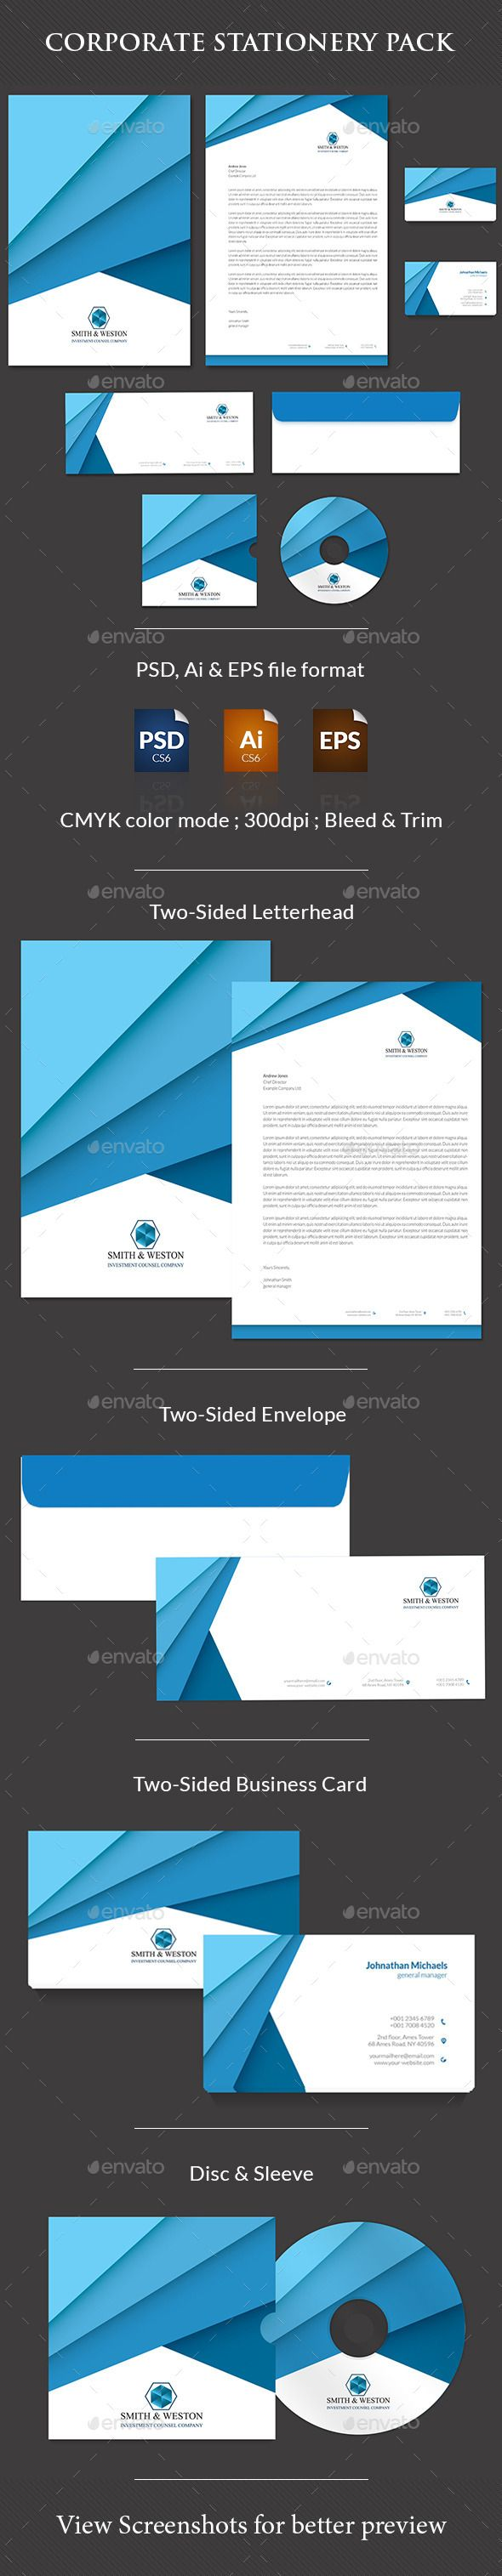 Corporate Stationary Pack - Download here: http://graphicriver.net/item/corporate-stationary-pack/12342880